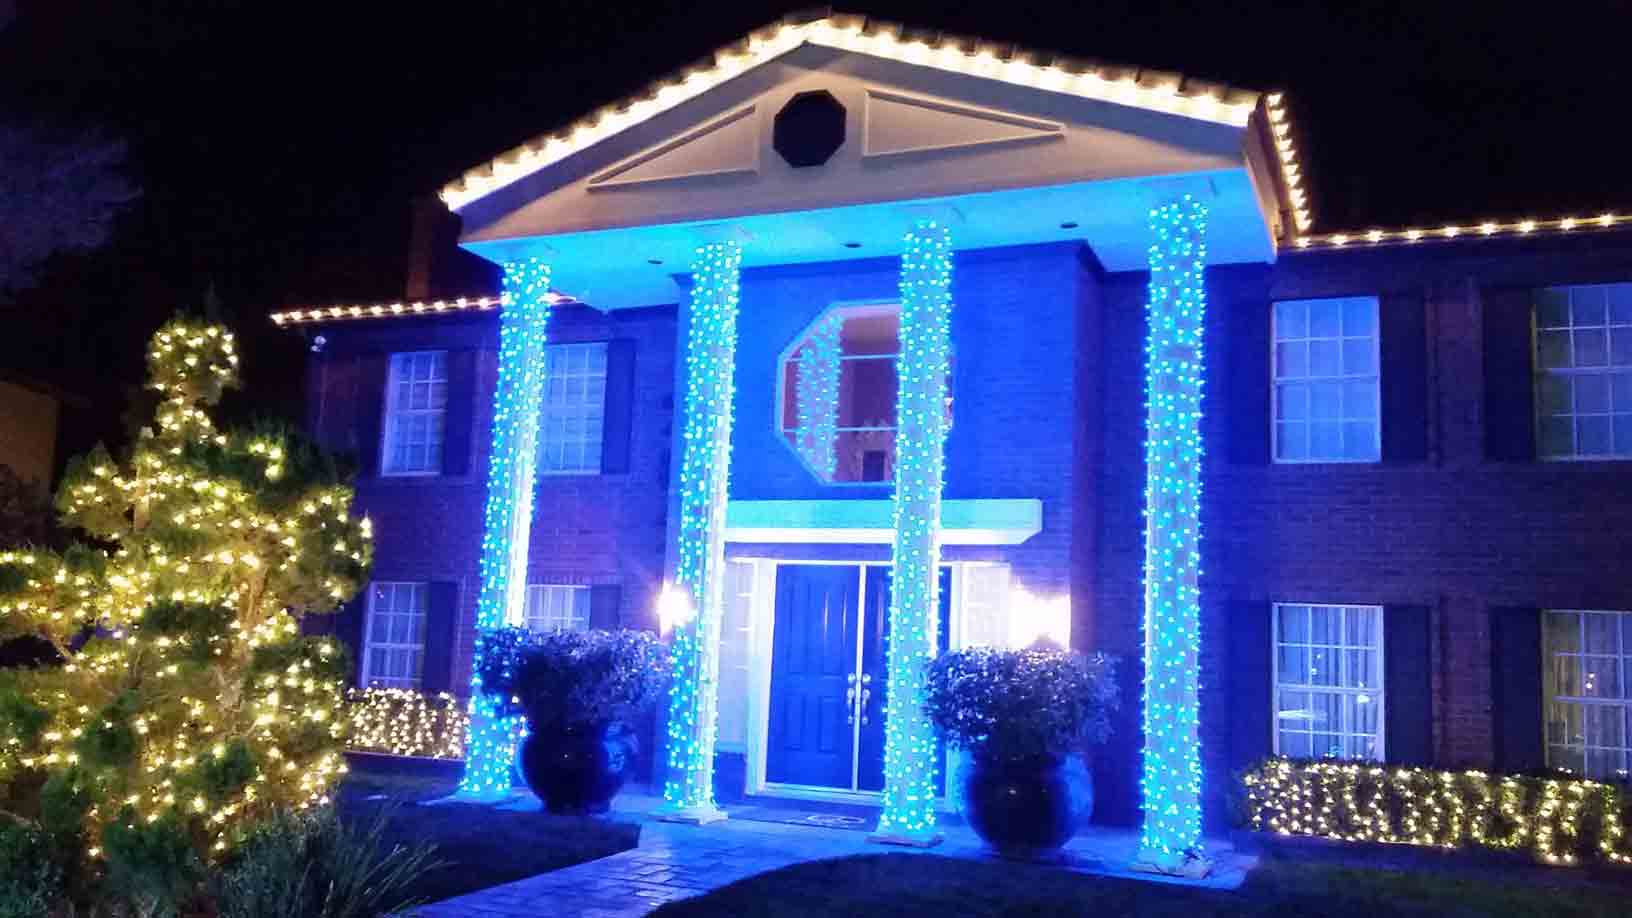 Hanukkah holiday lighting by Holiday Decorations in Las Vegas